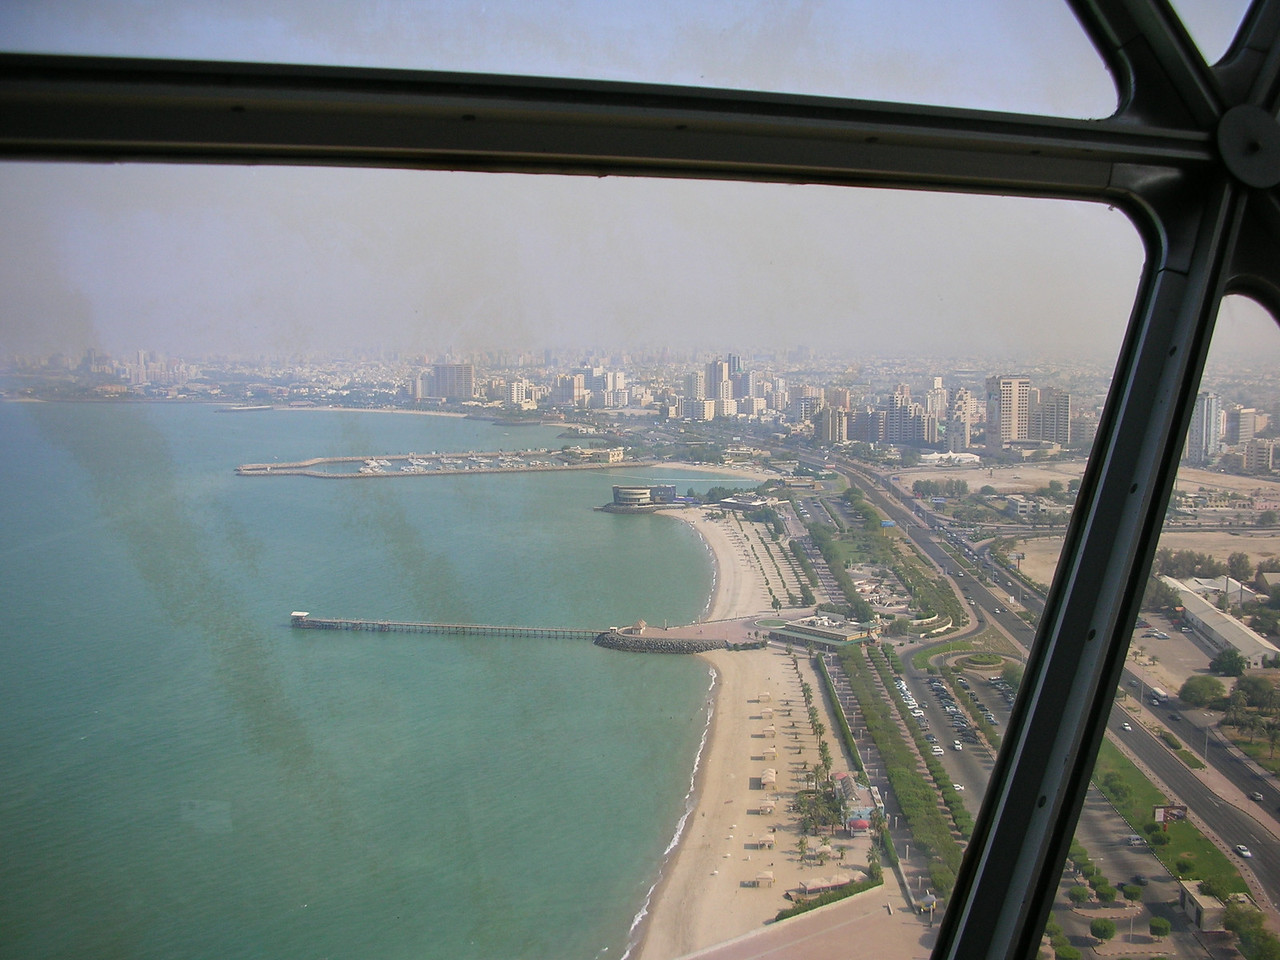 From the observation level of the Kuwait City Towers.